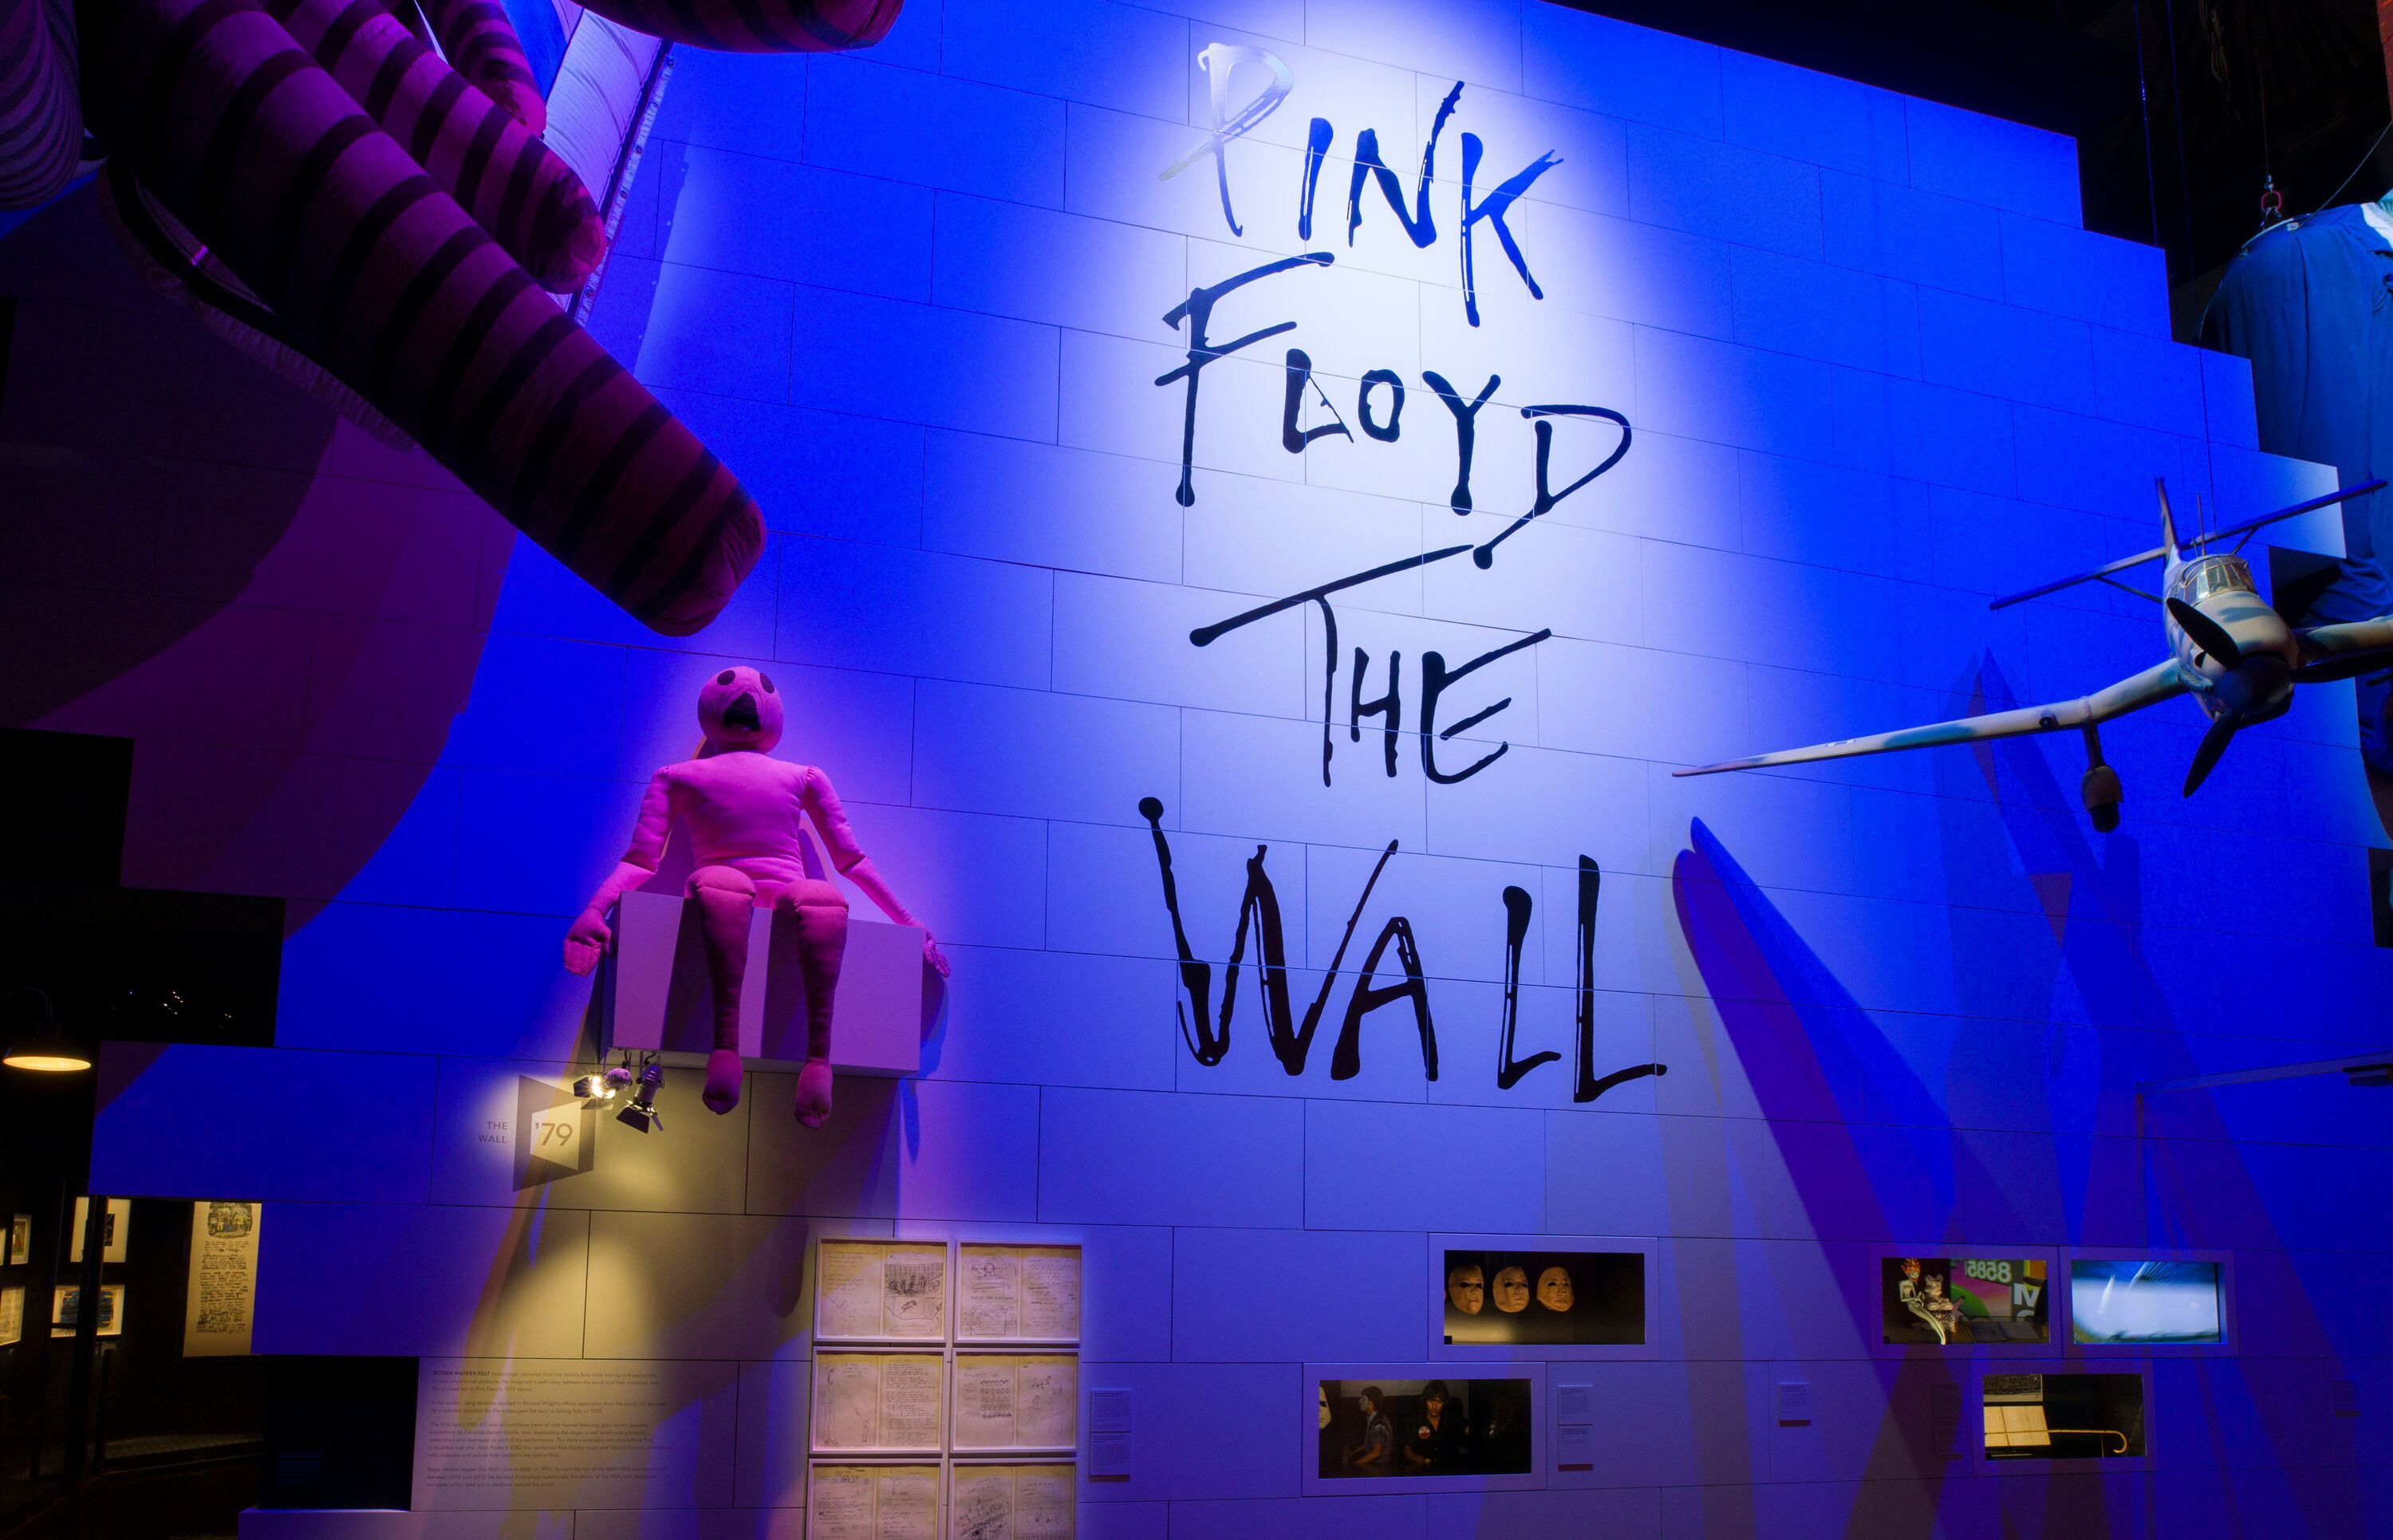 The Pink Floyd Exhibition